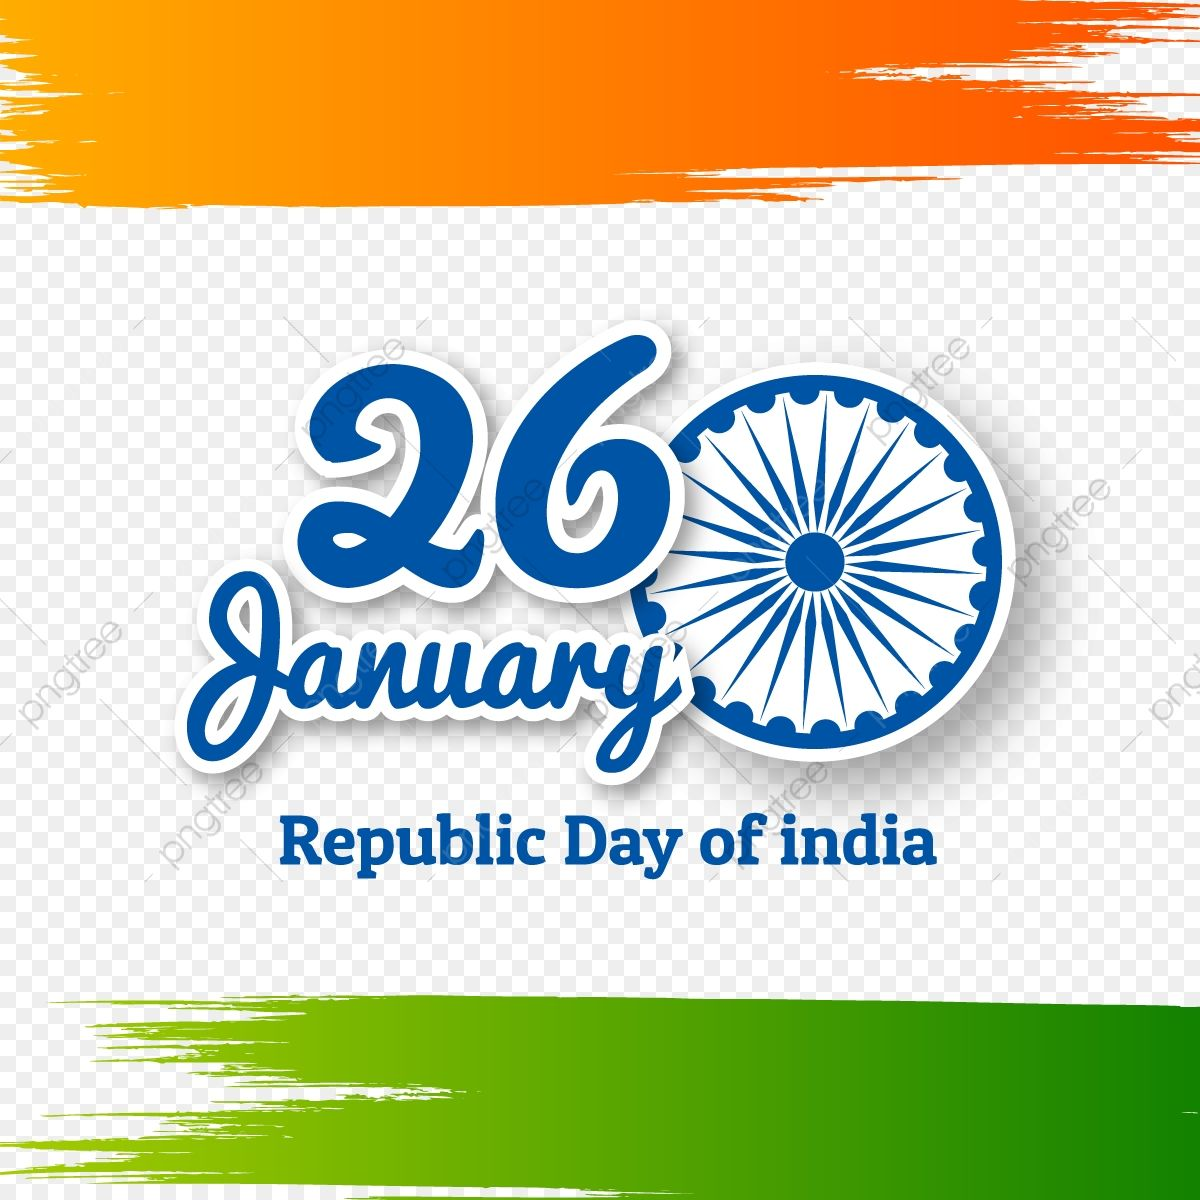 Indian Republic Day Concept With Text 26 January Republic Day India Republic Png And Vector With Transparent Background For Free Download In 2021 Republic Day India Republic Day Images Indian Flag Wallpaper